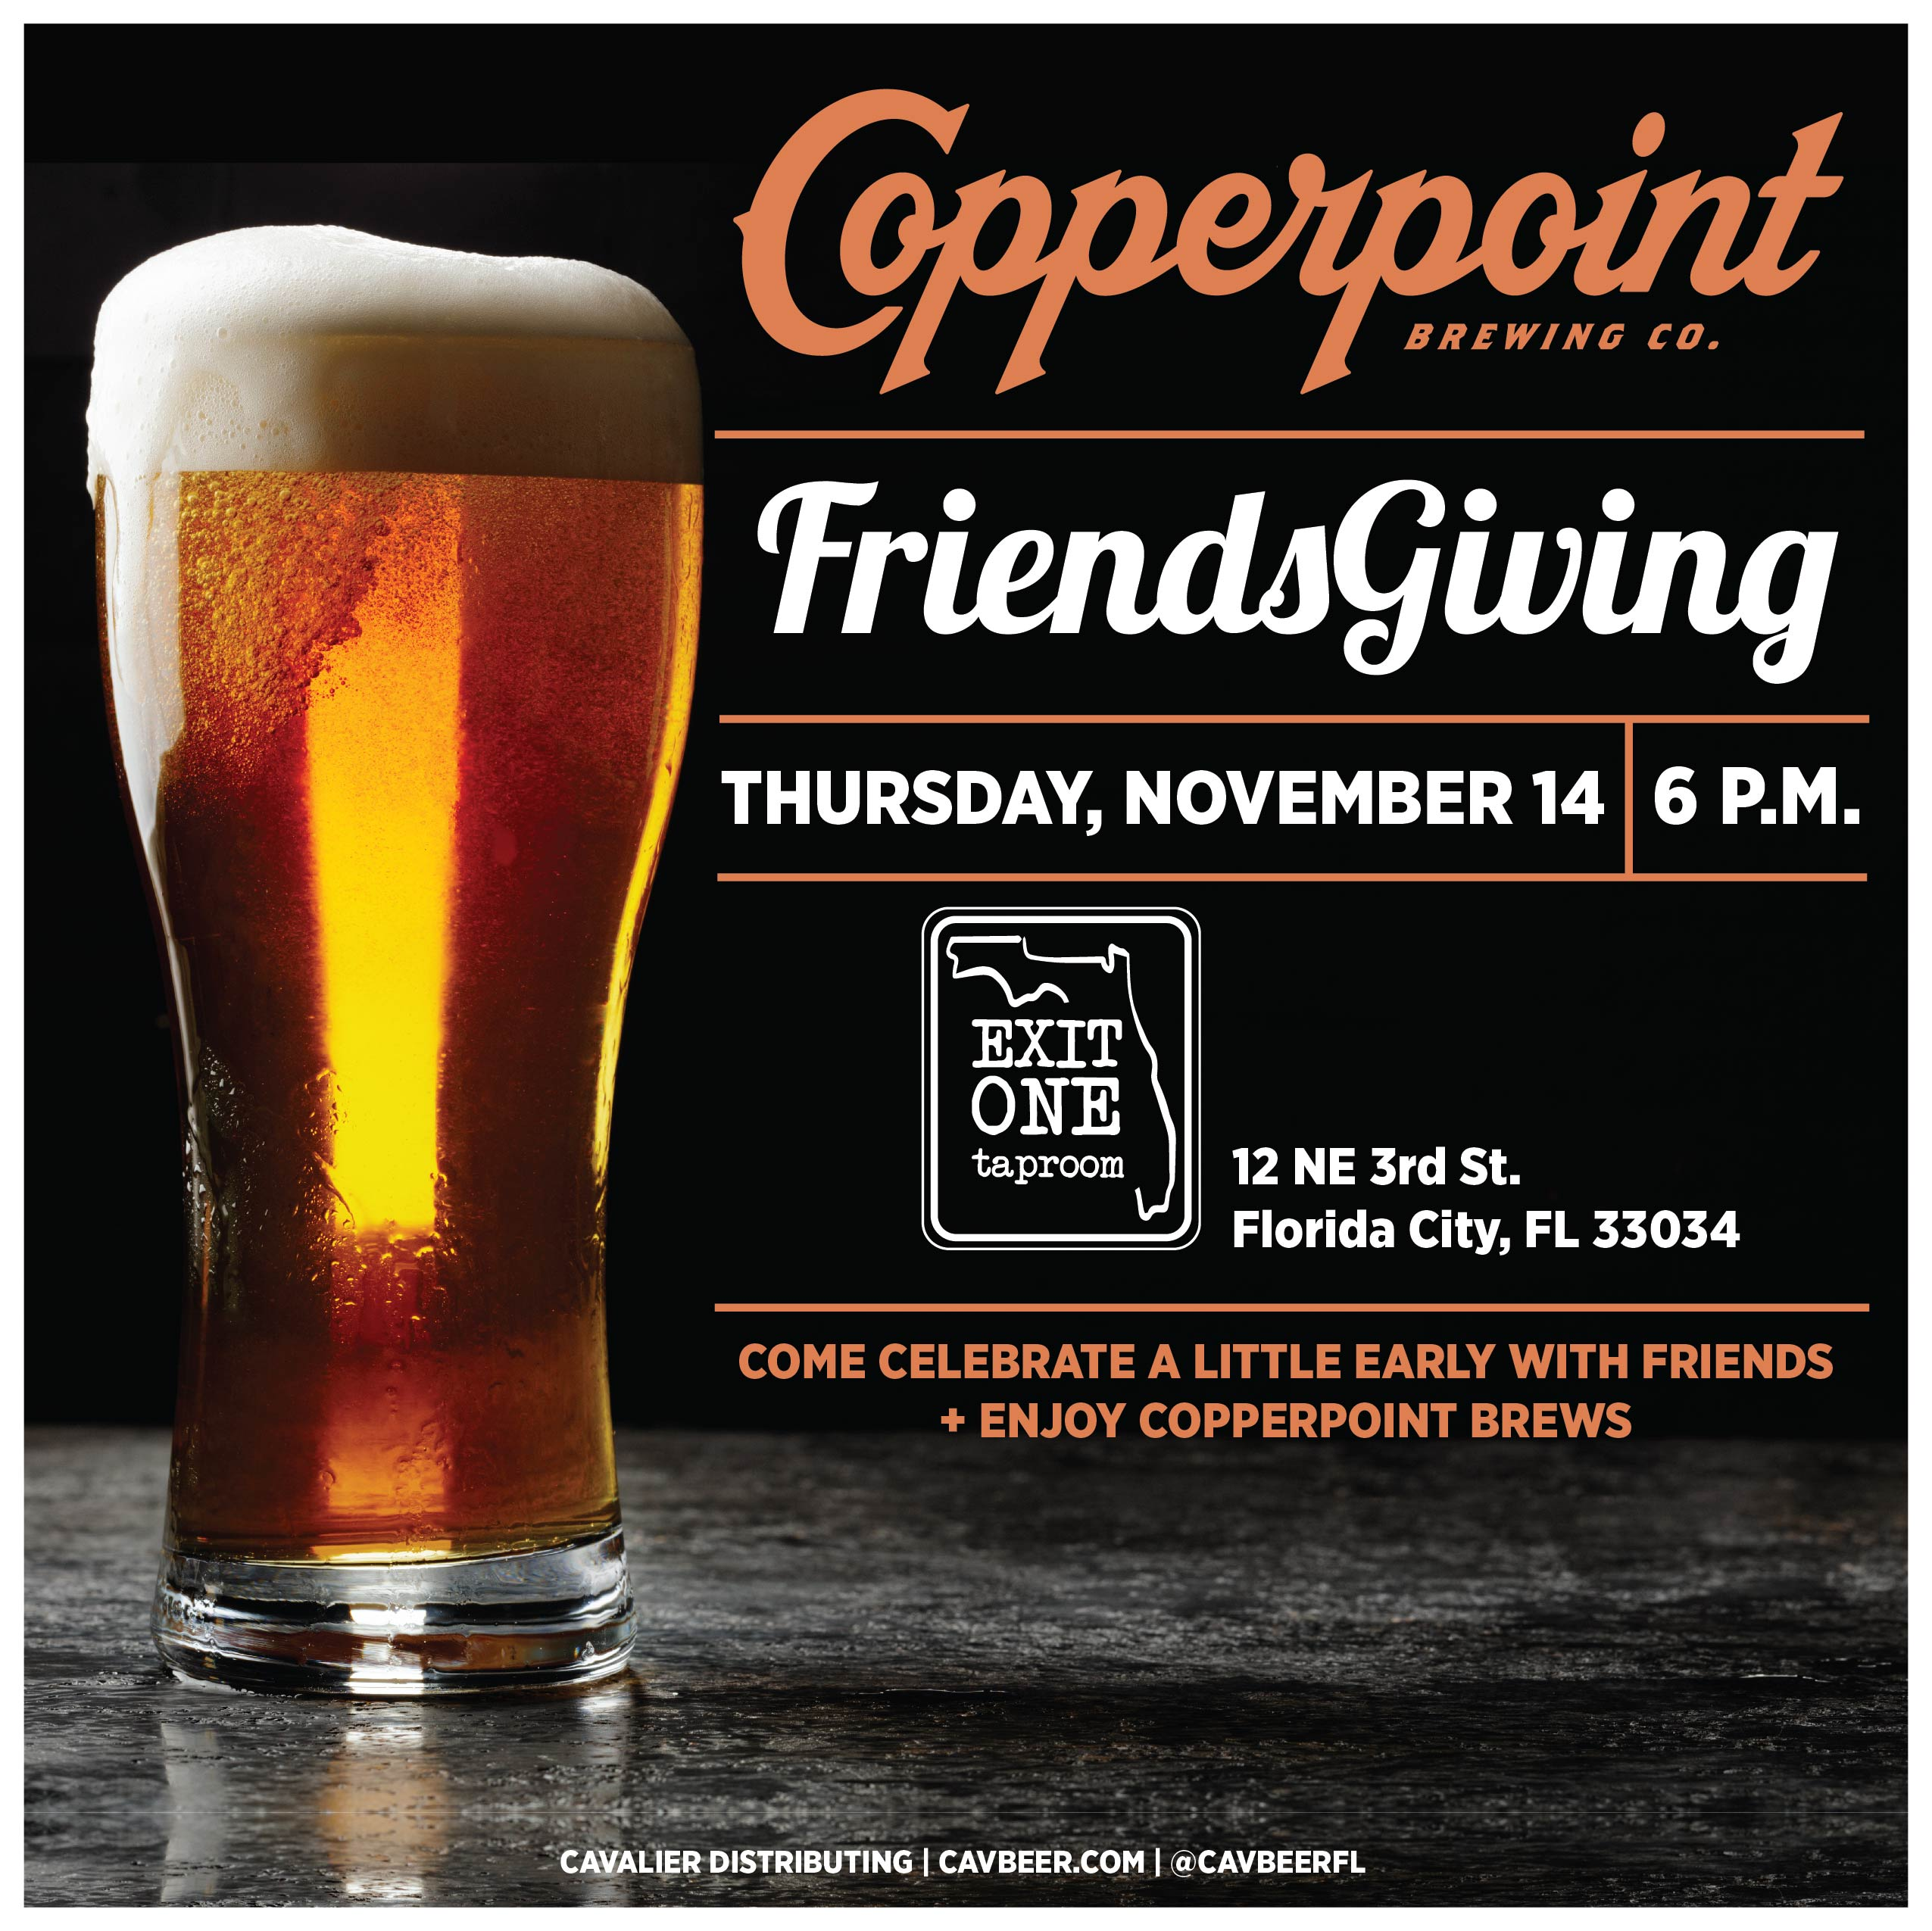 Friendsgiving @ Exit One Taproom